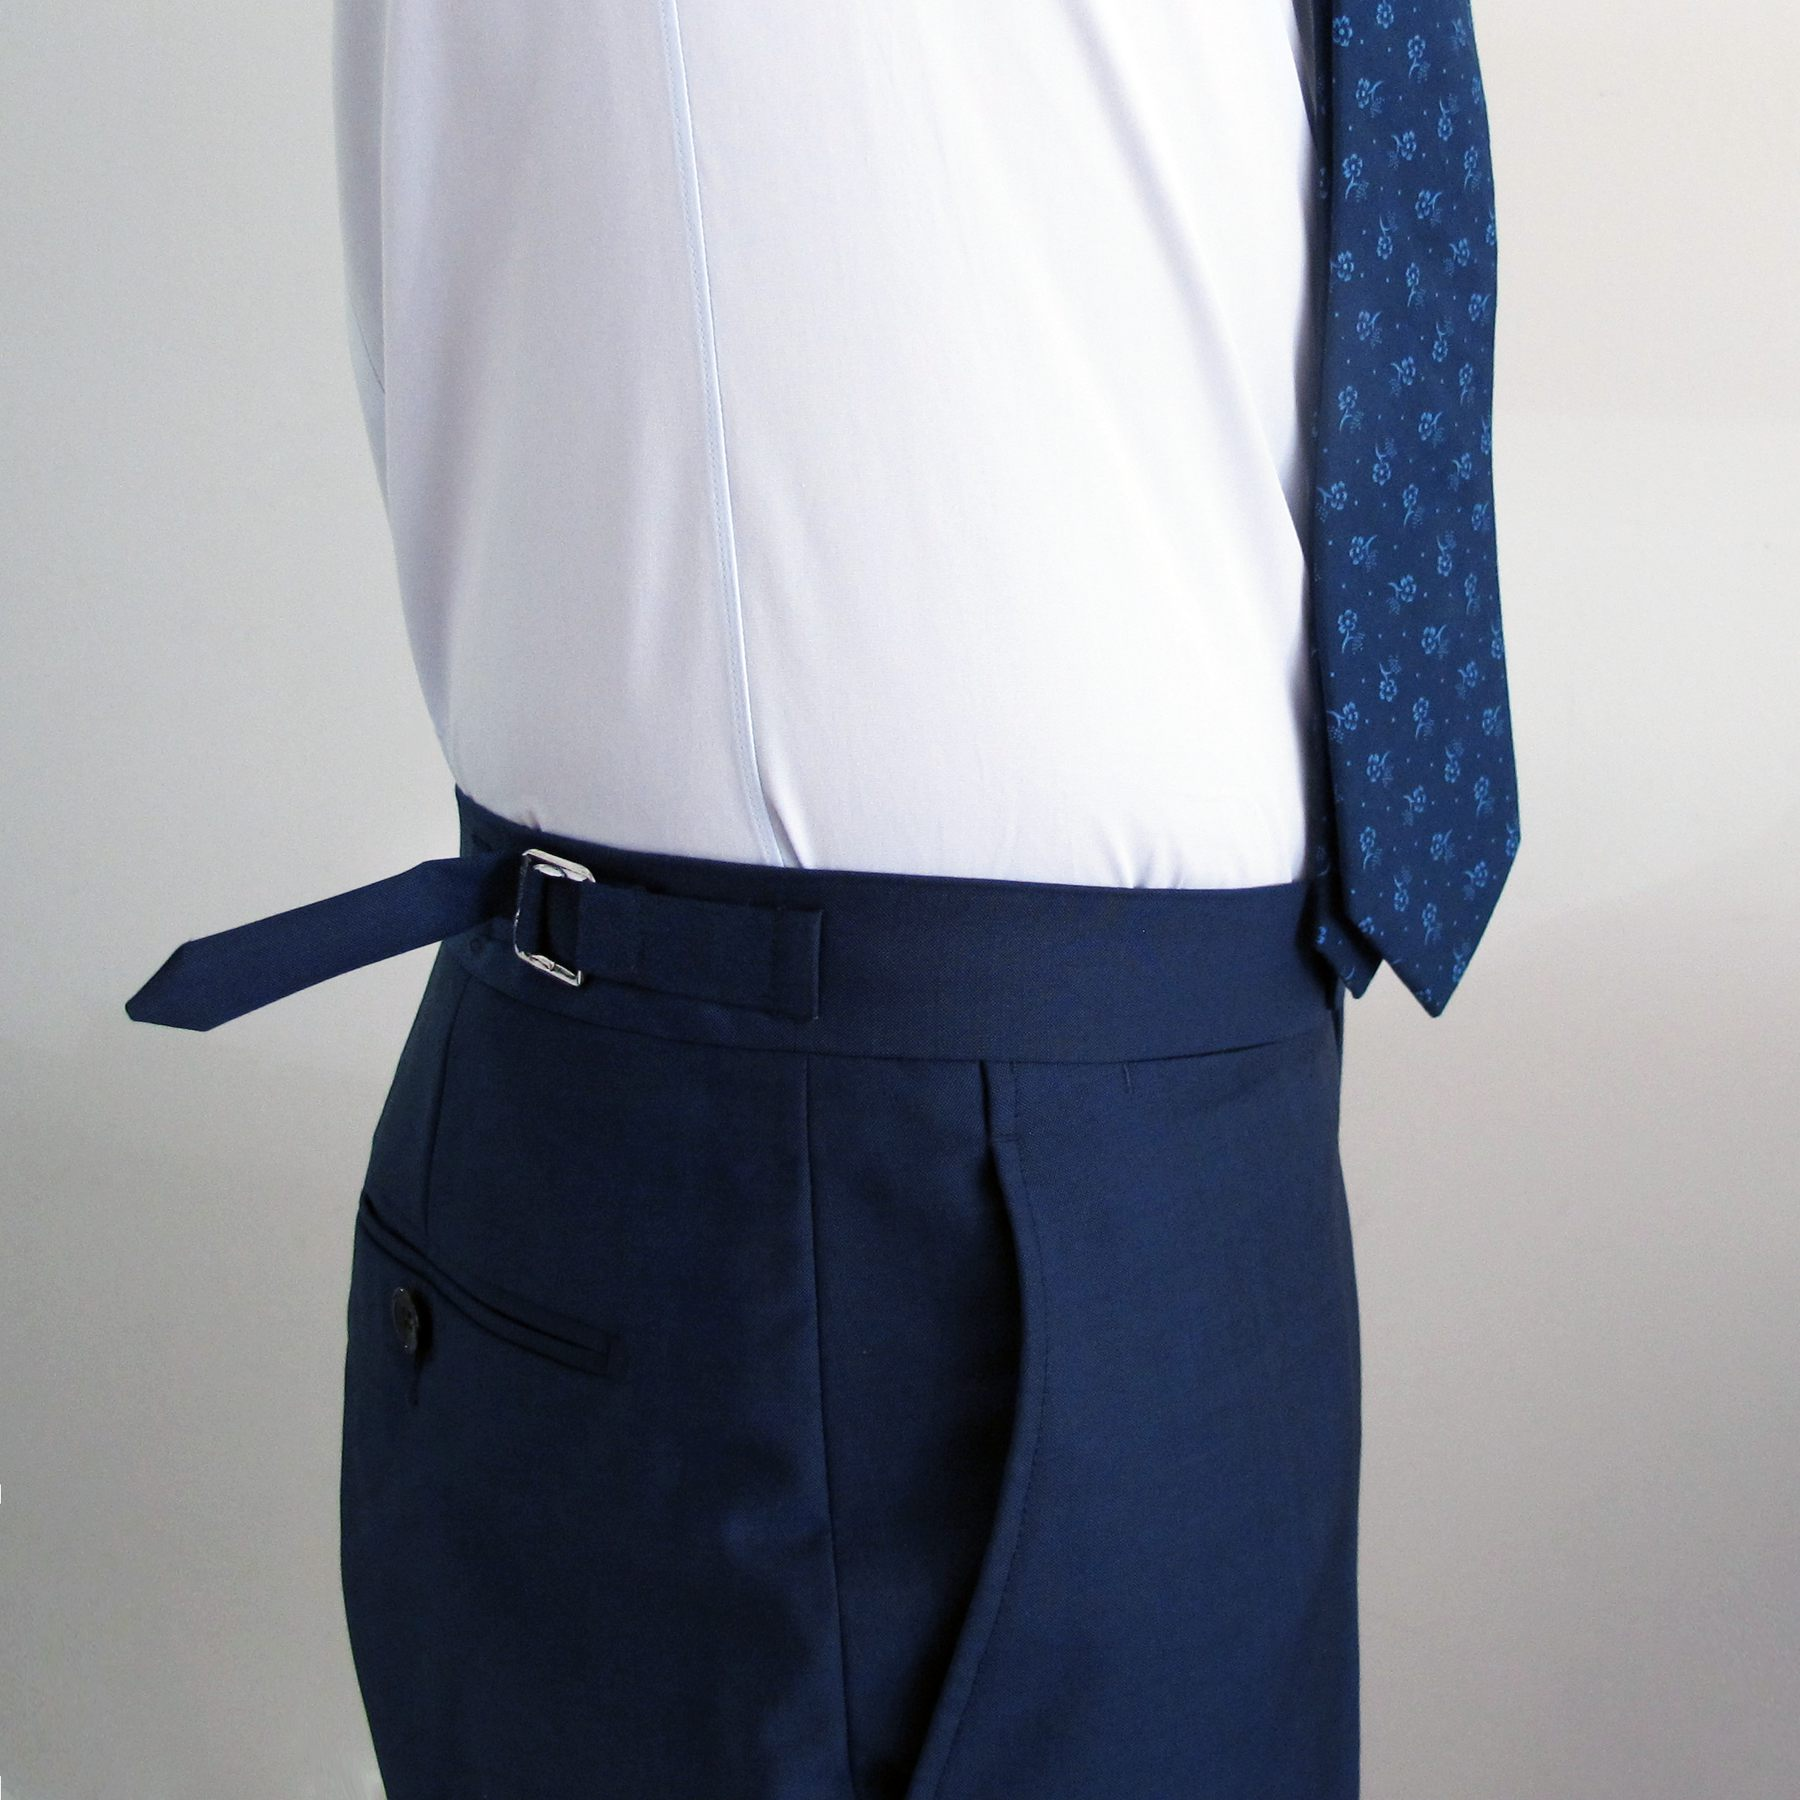 suit supply side tabs